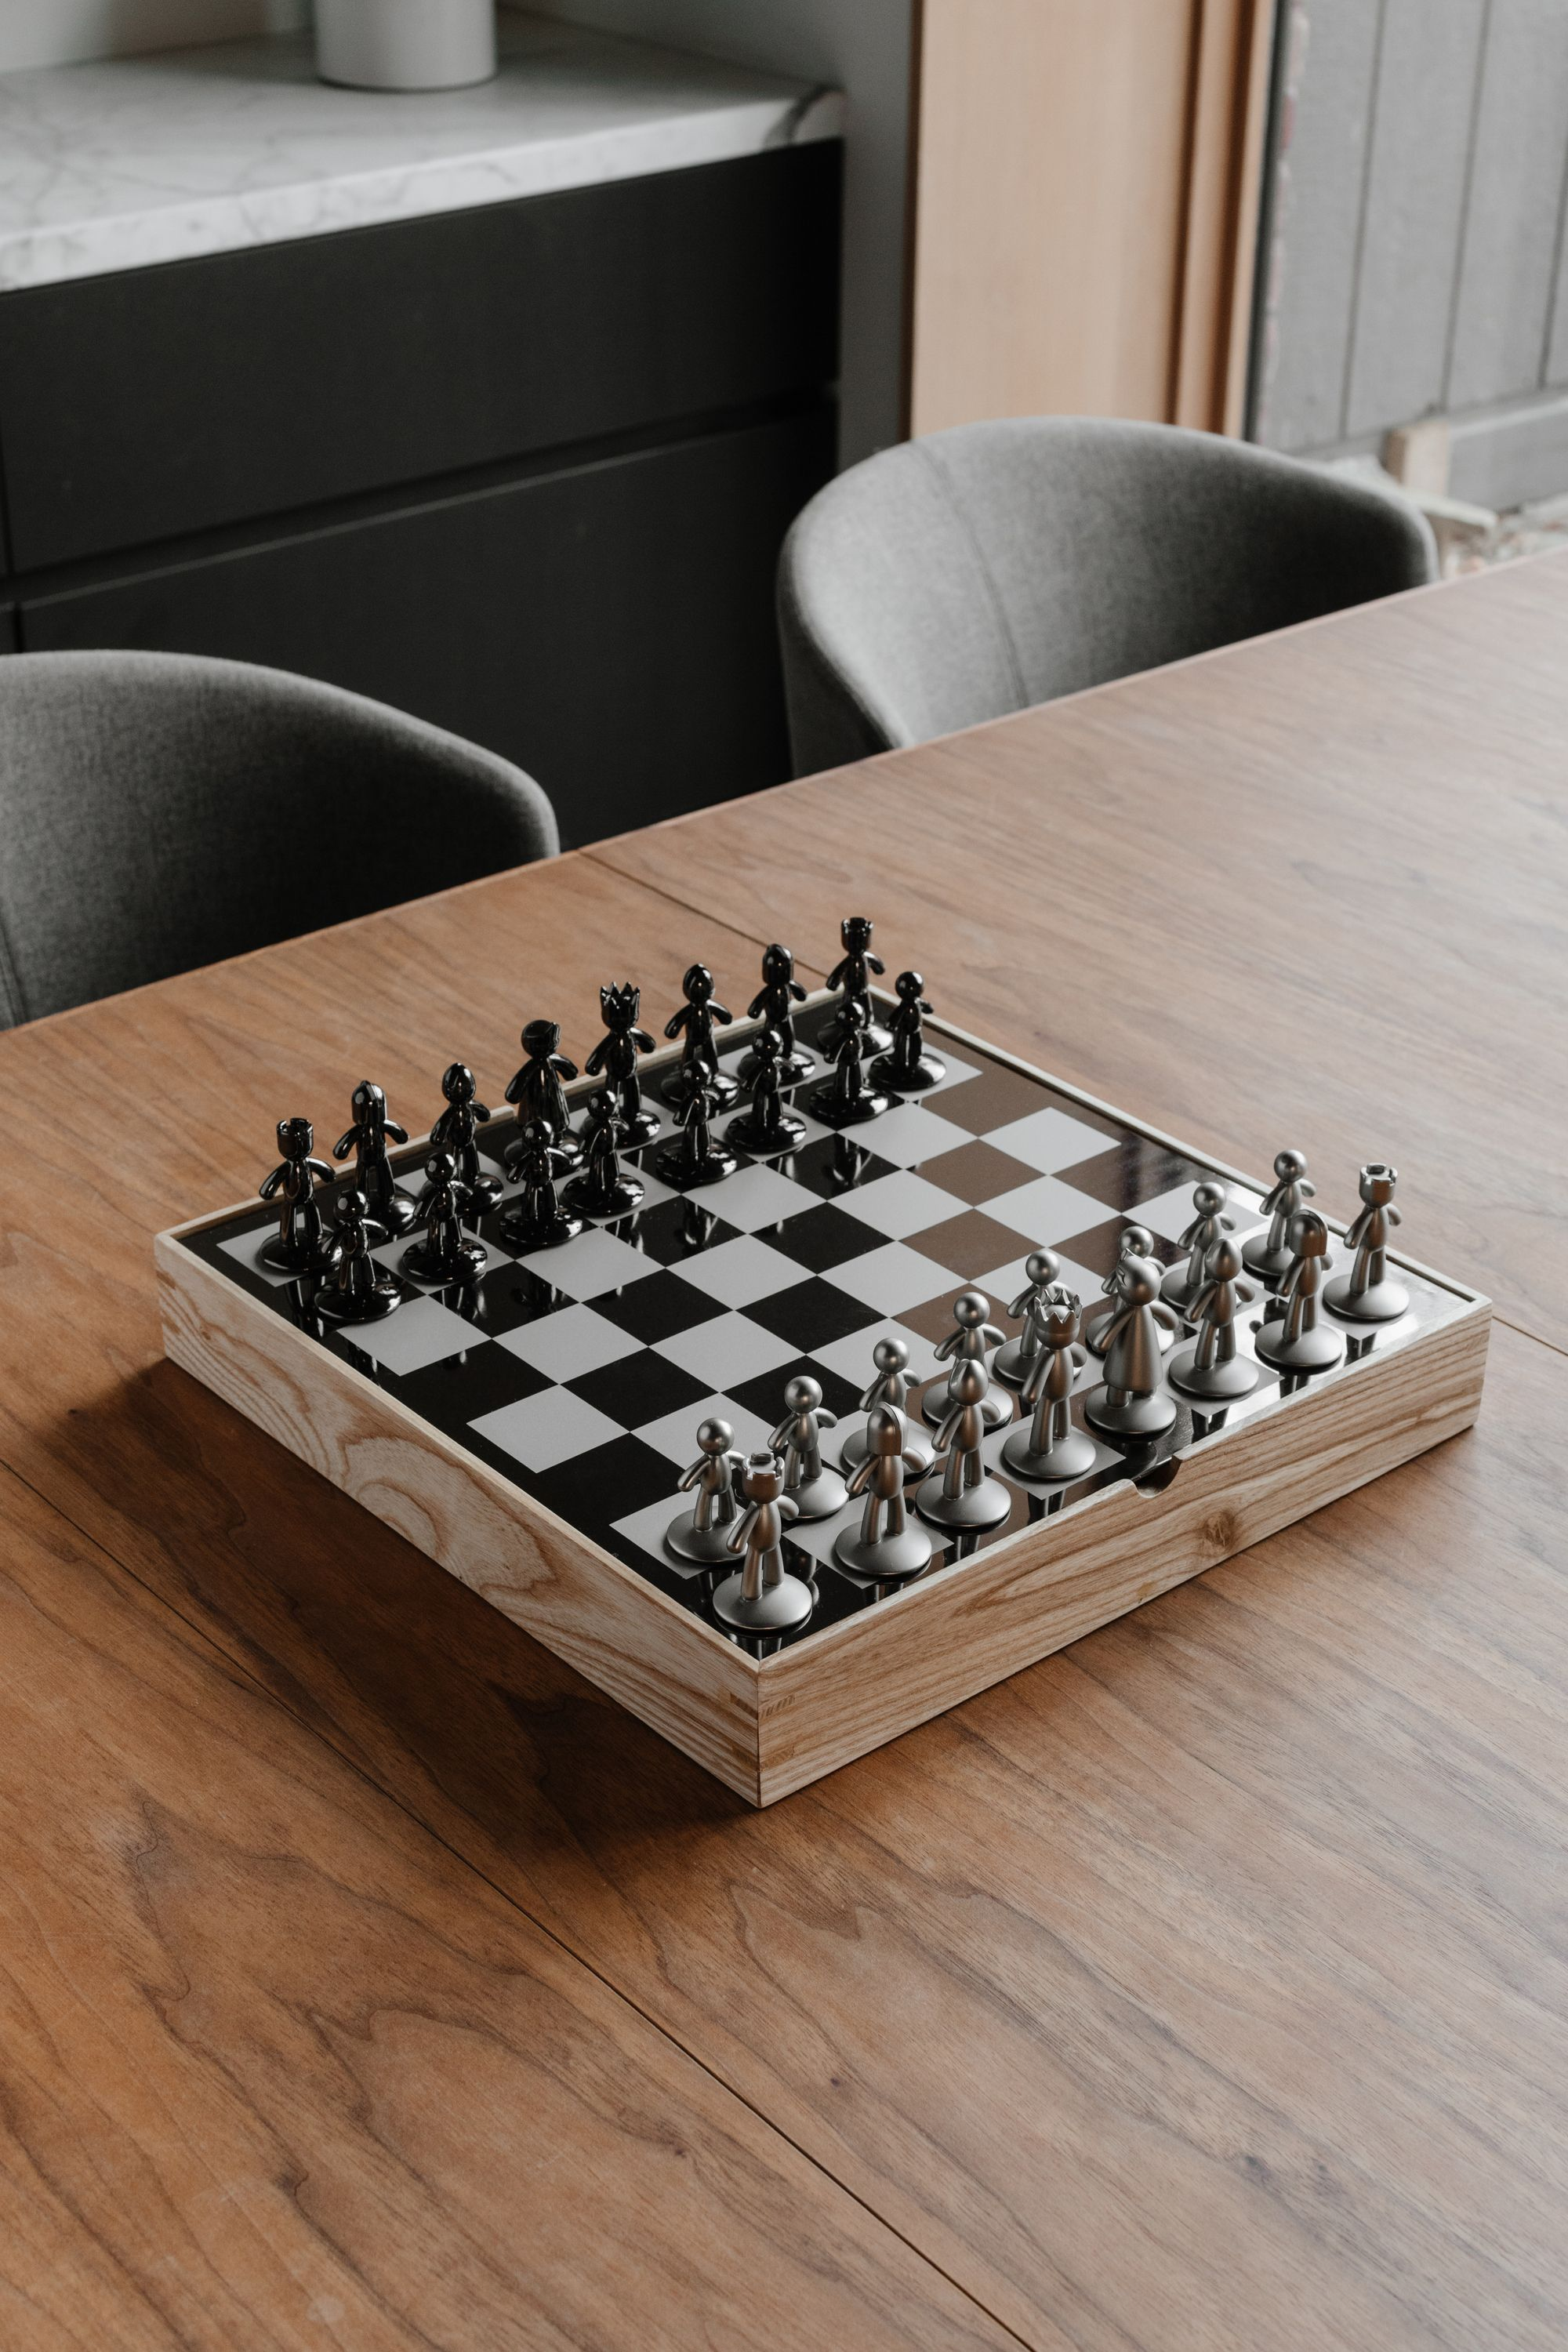 Buddy chess set is a great gift for dad this fathers day